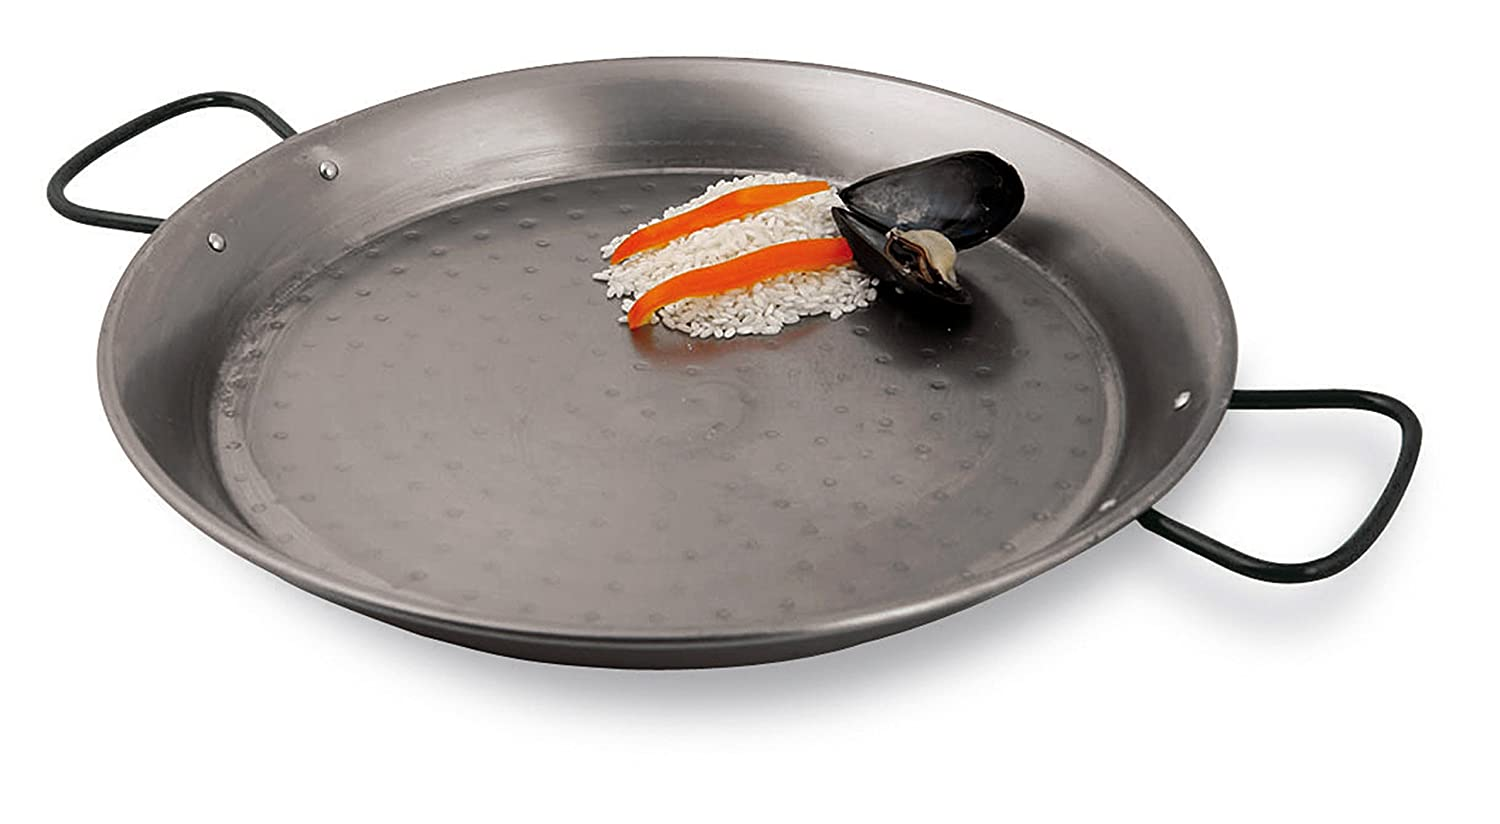 Paderno World Cuisine 13.325 Inch Polished Carbon Steel Paella Pan A4172434